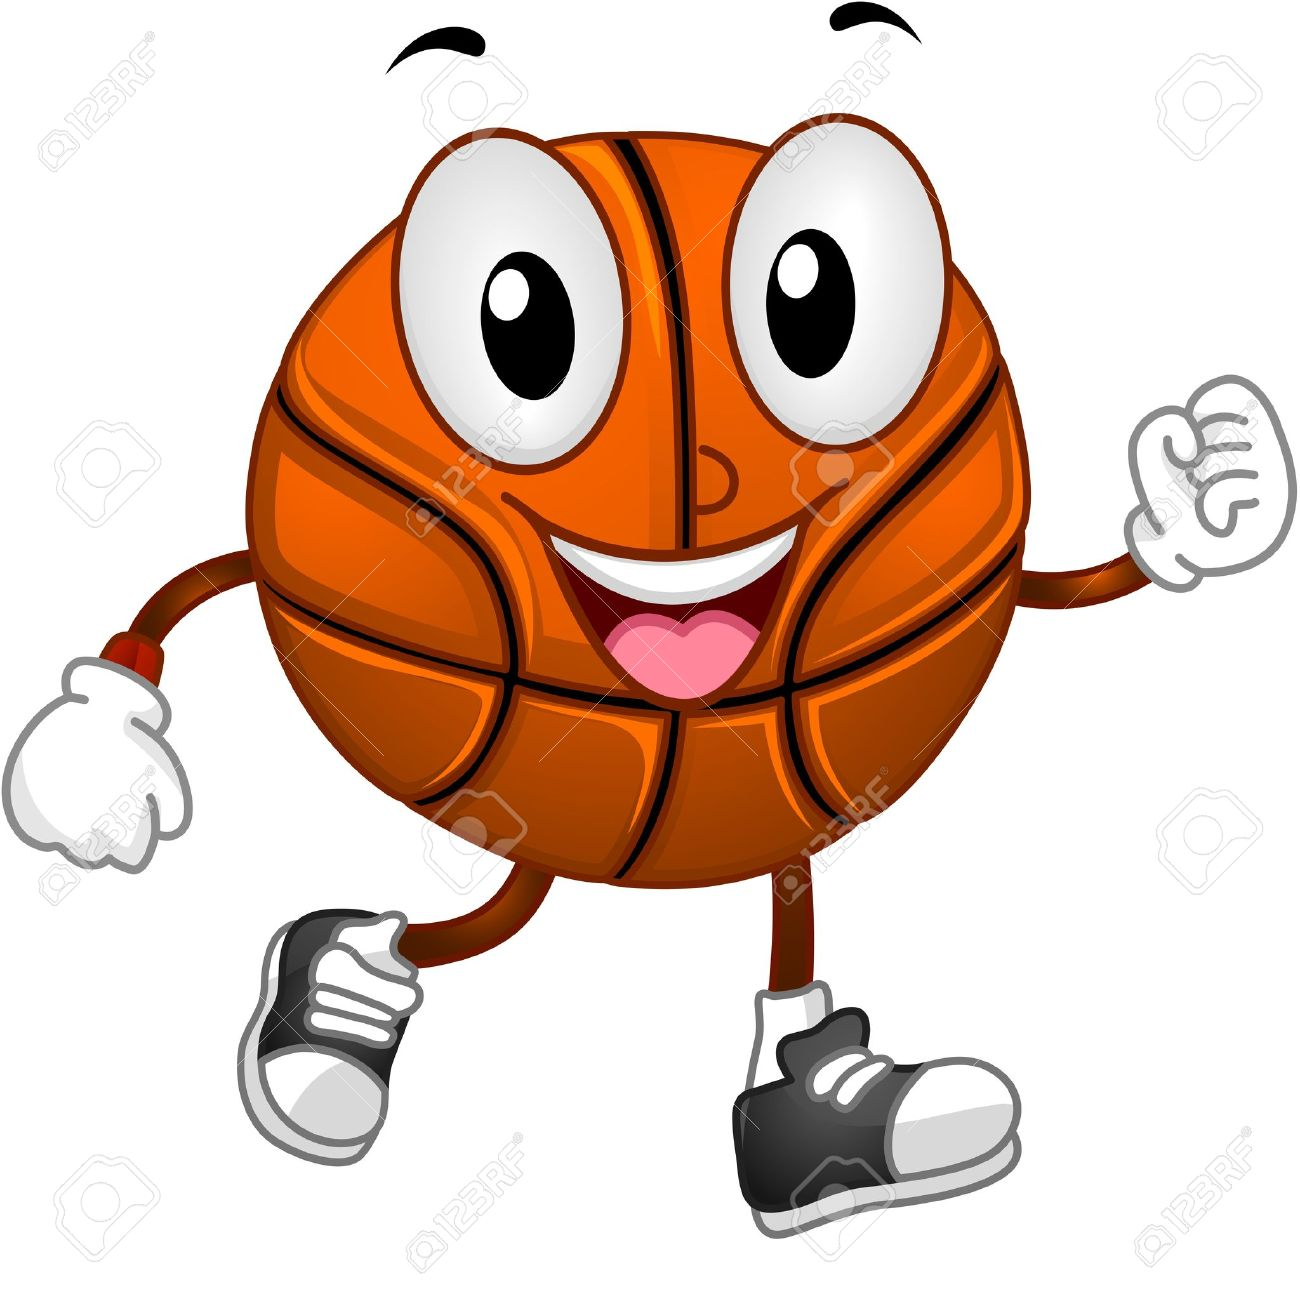 1300x1300 Basketball Manager Clipart Amp Basketball Manager Clip Art Images